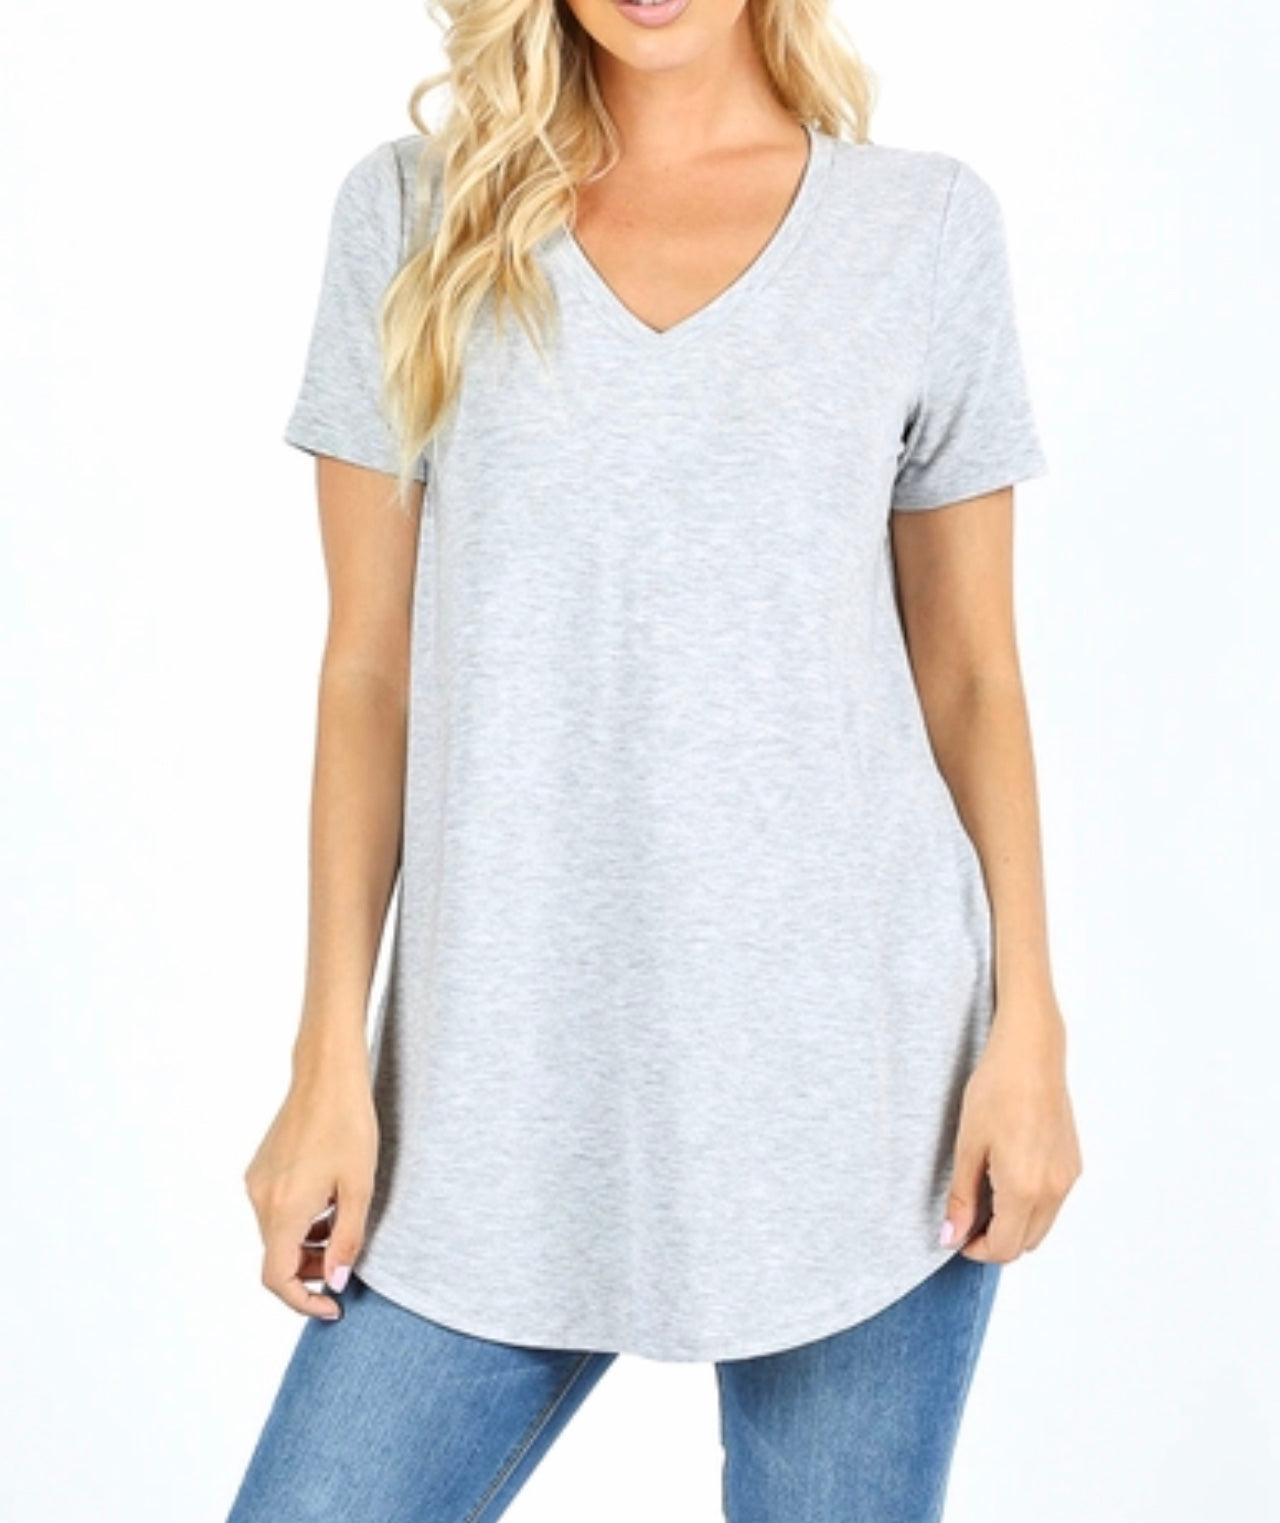 Heather Grey Vneck tee (plus available)